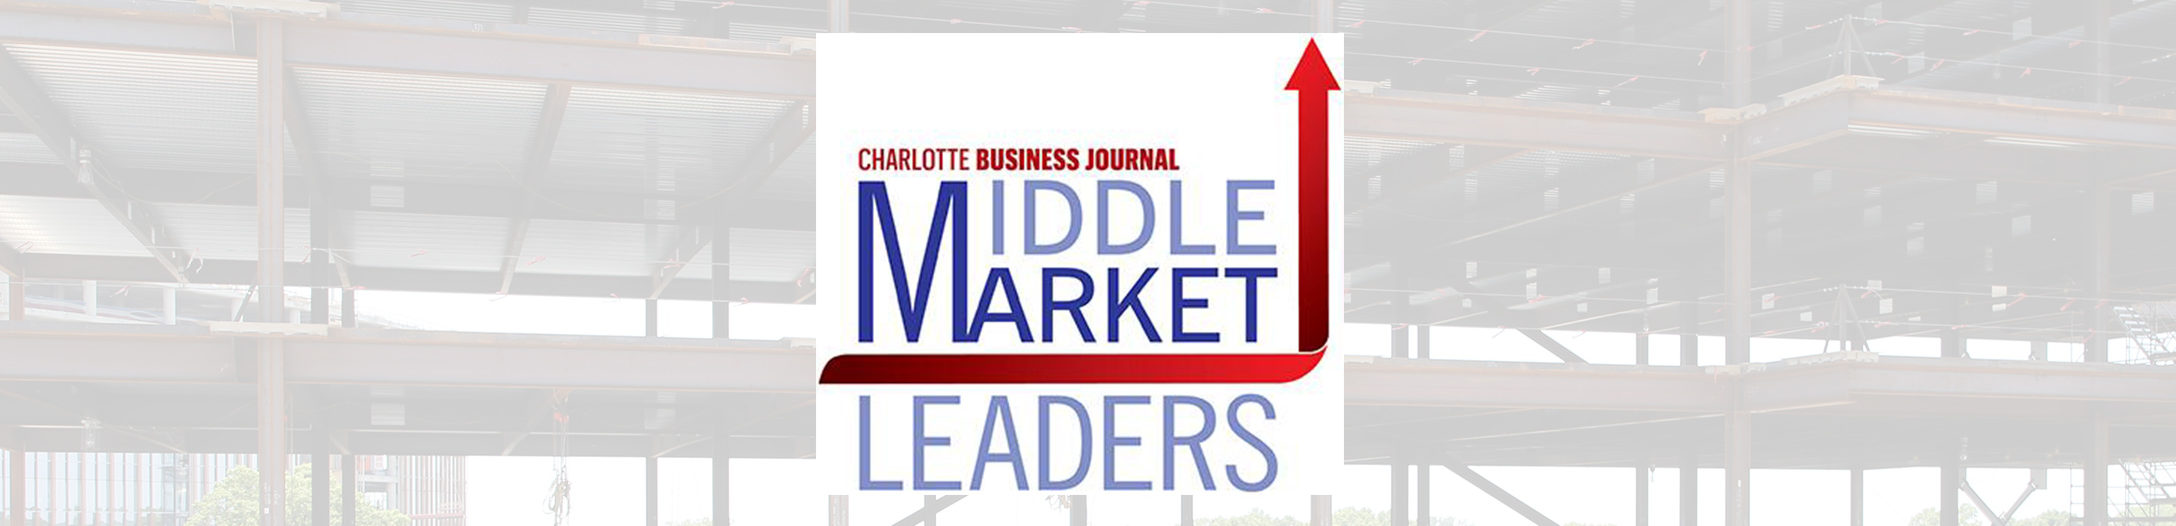 The Charlotte Business Journal honors Edifice as the #1 Middle Market Leader